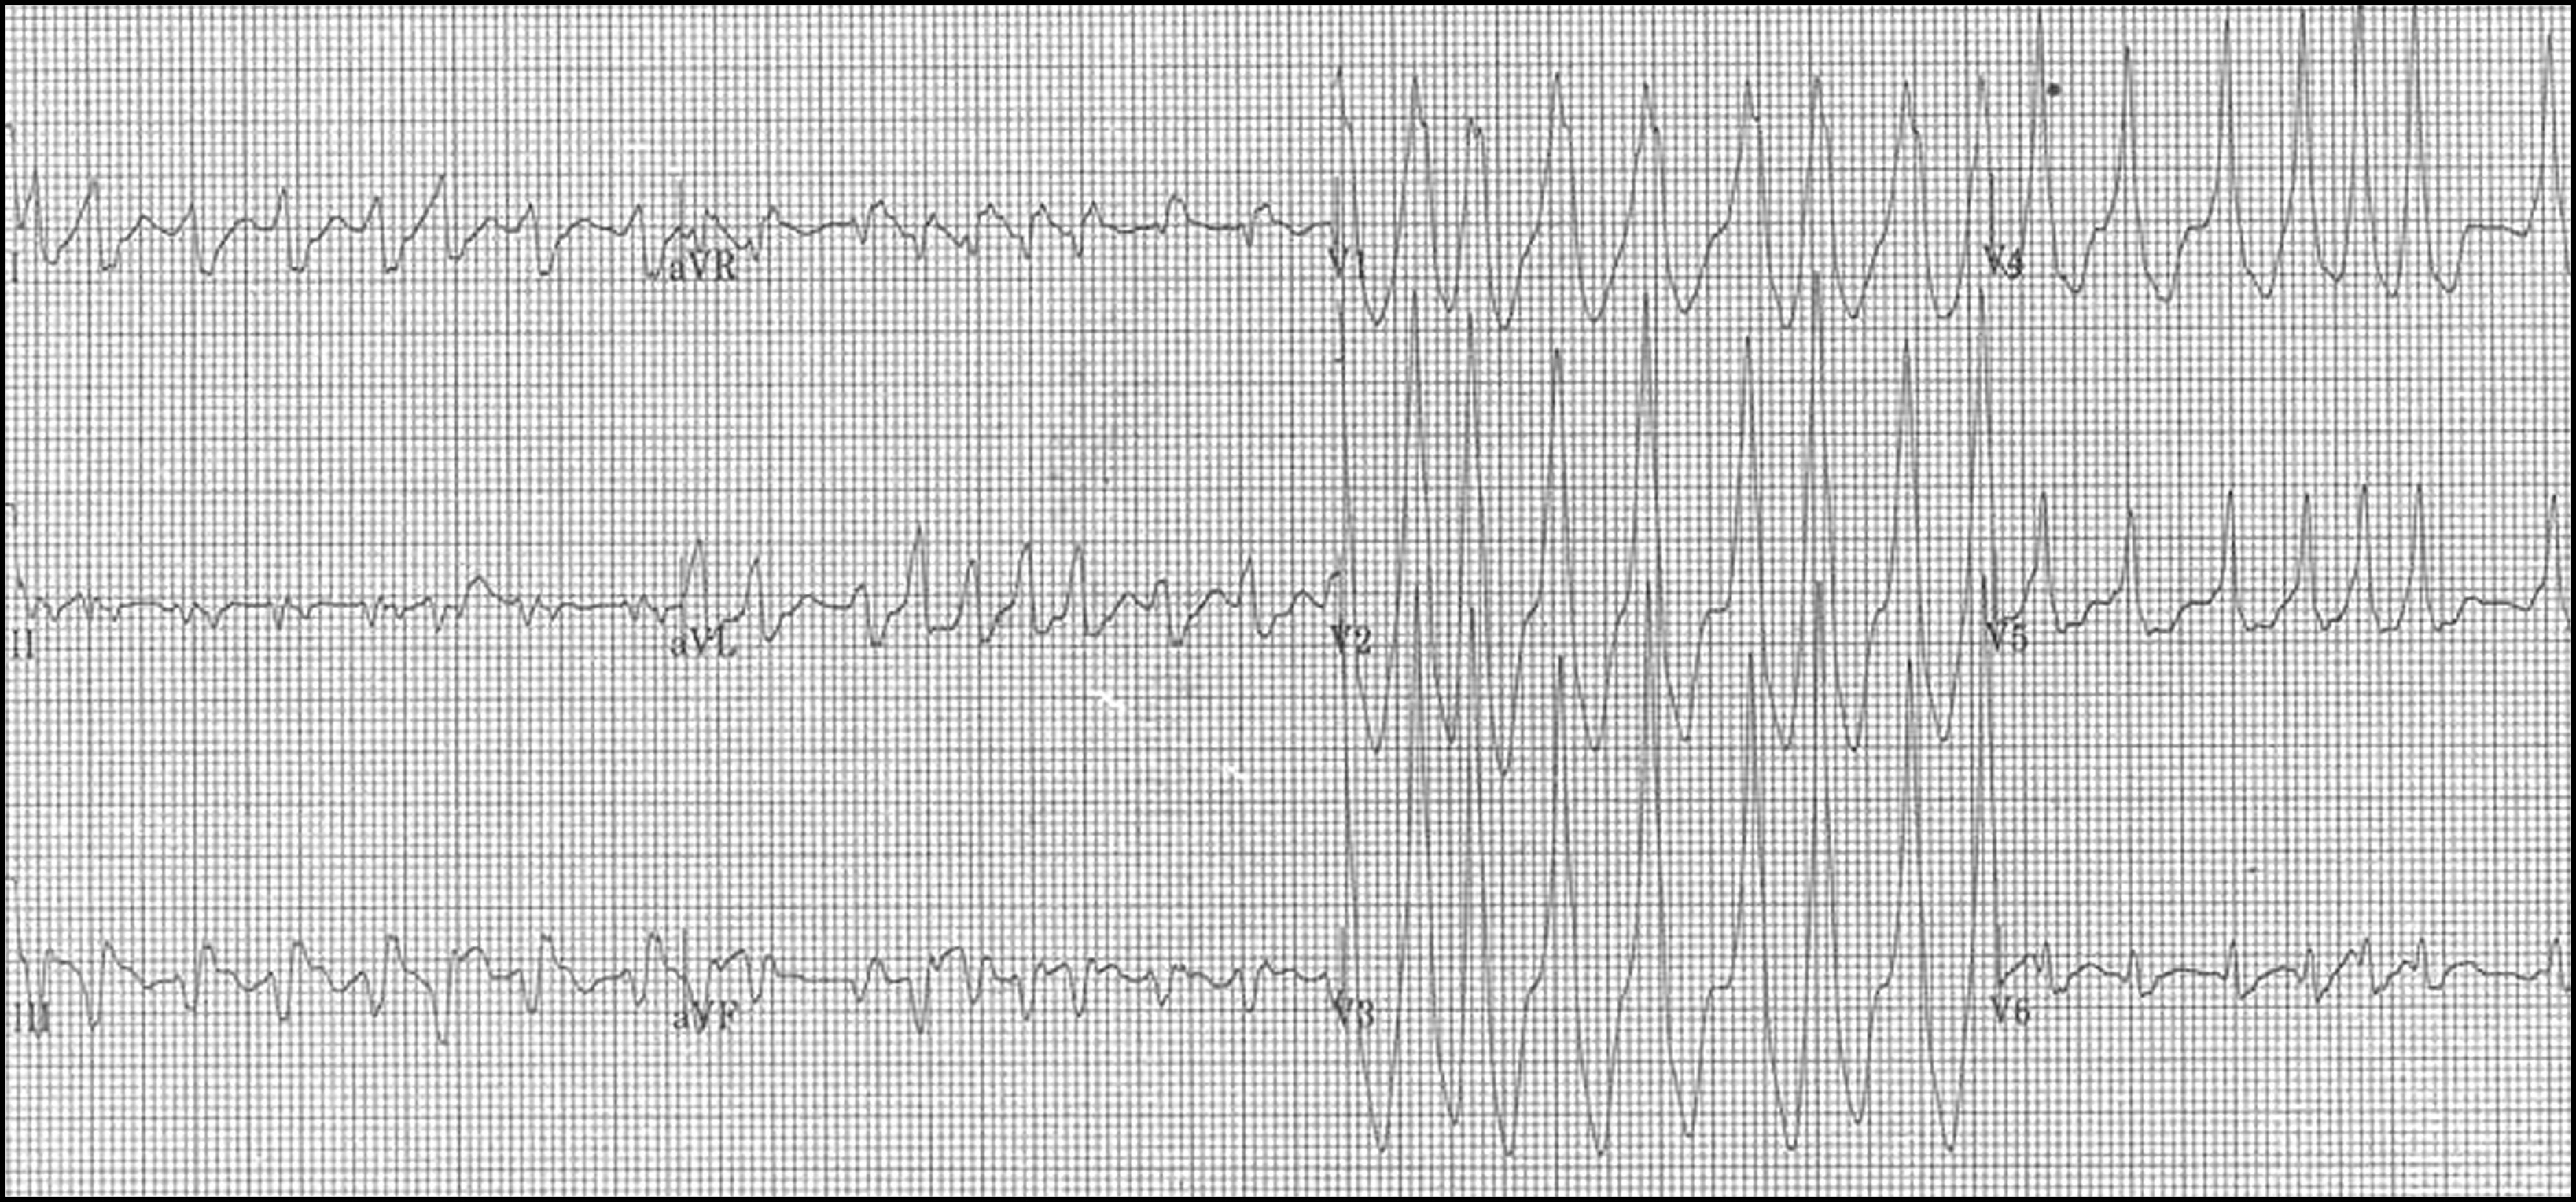 Atrial Fibrillation In The Wolff Parkinson White Syndrome Ecg Recognition And Treatment In The